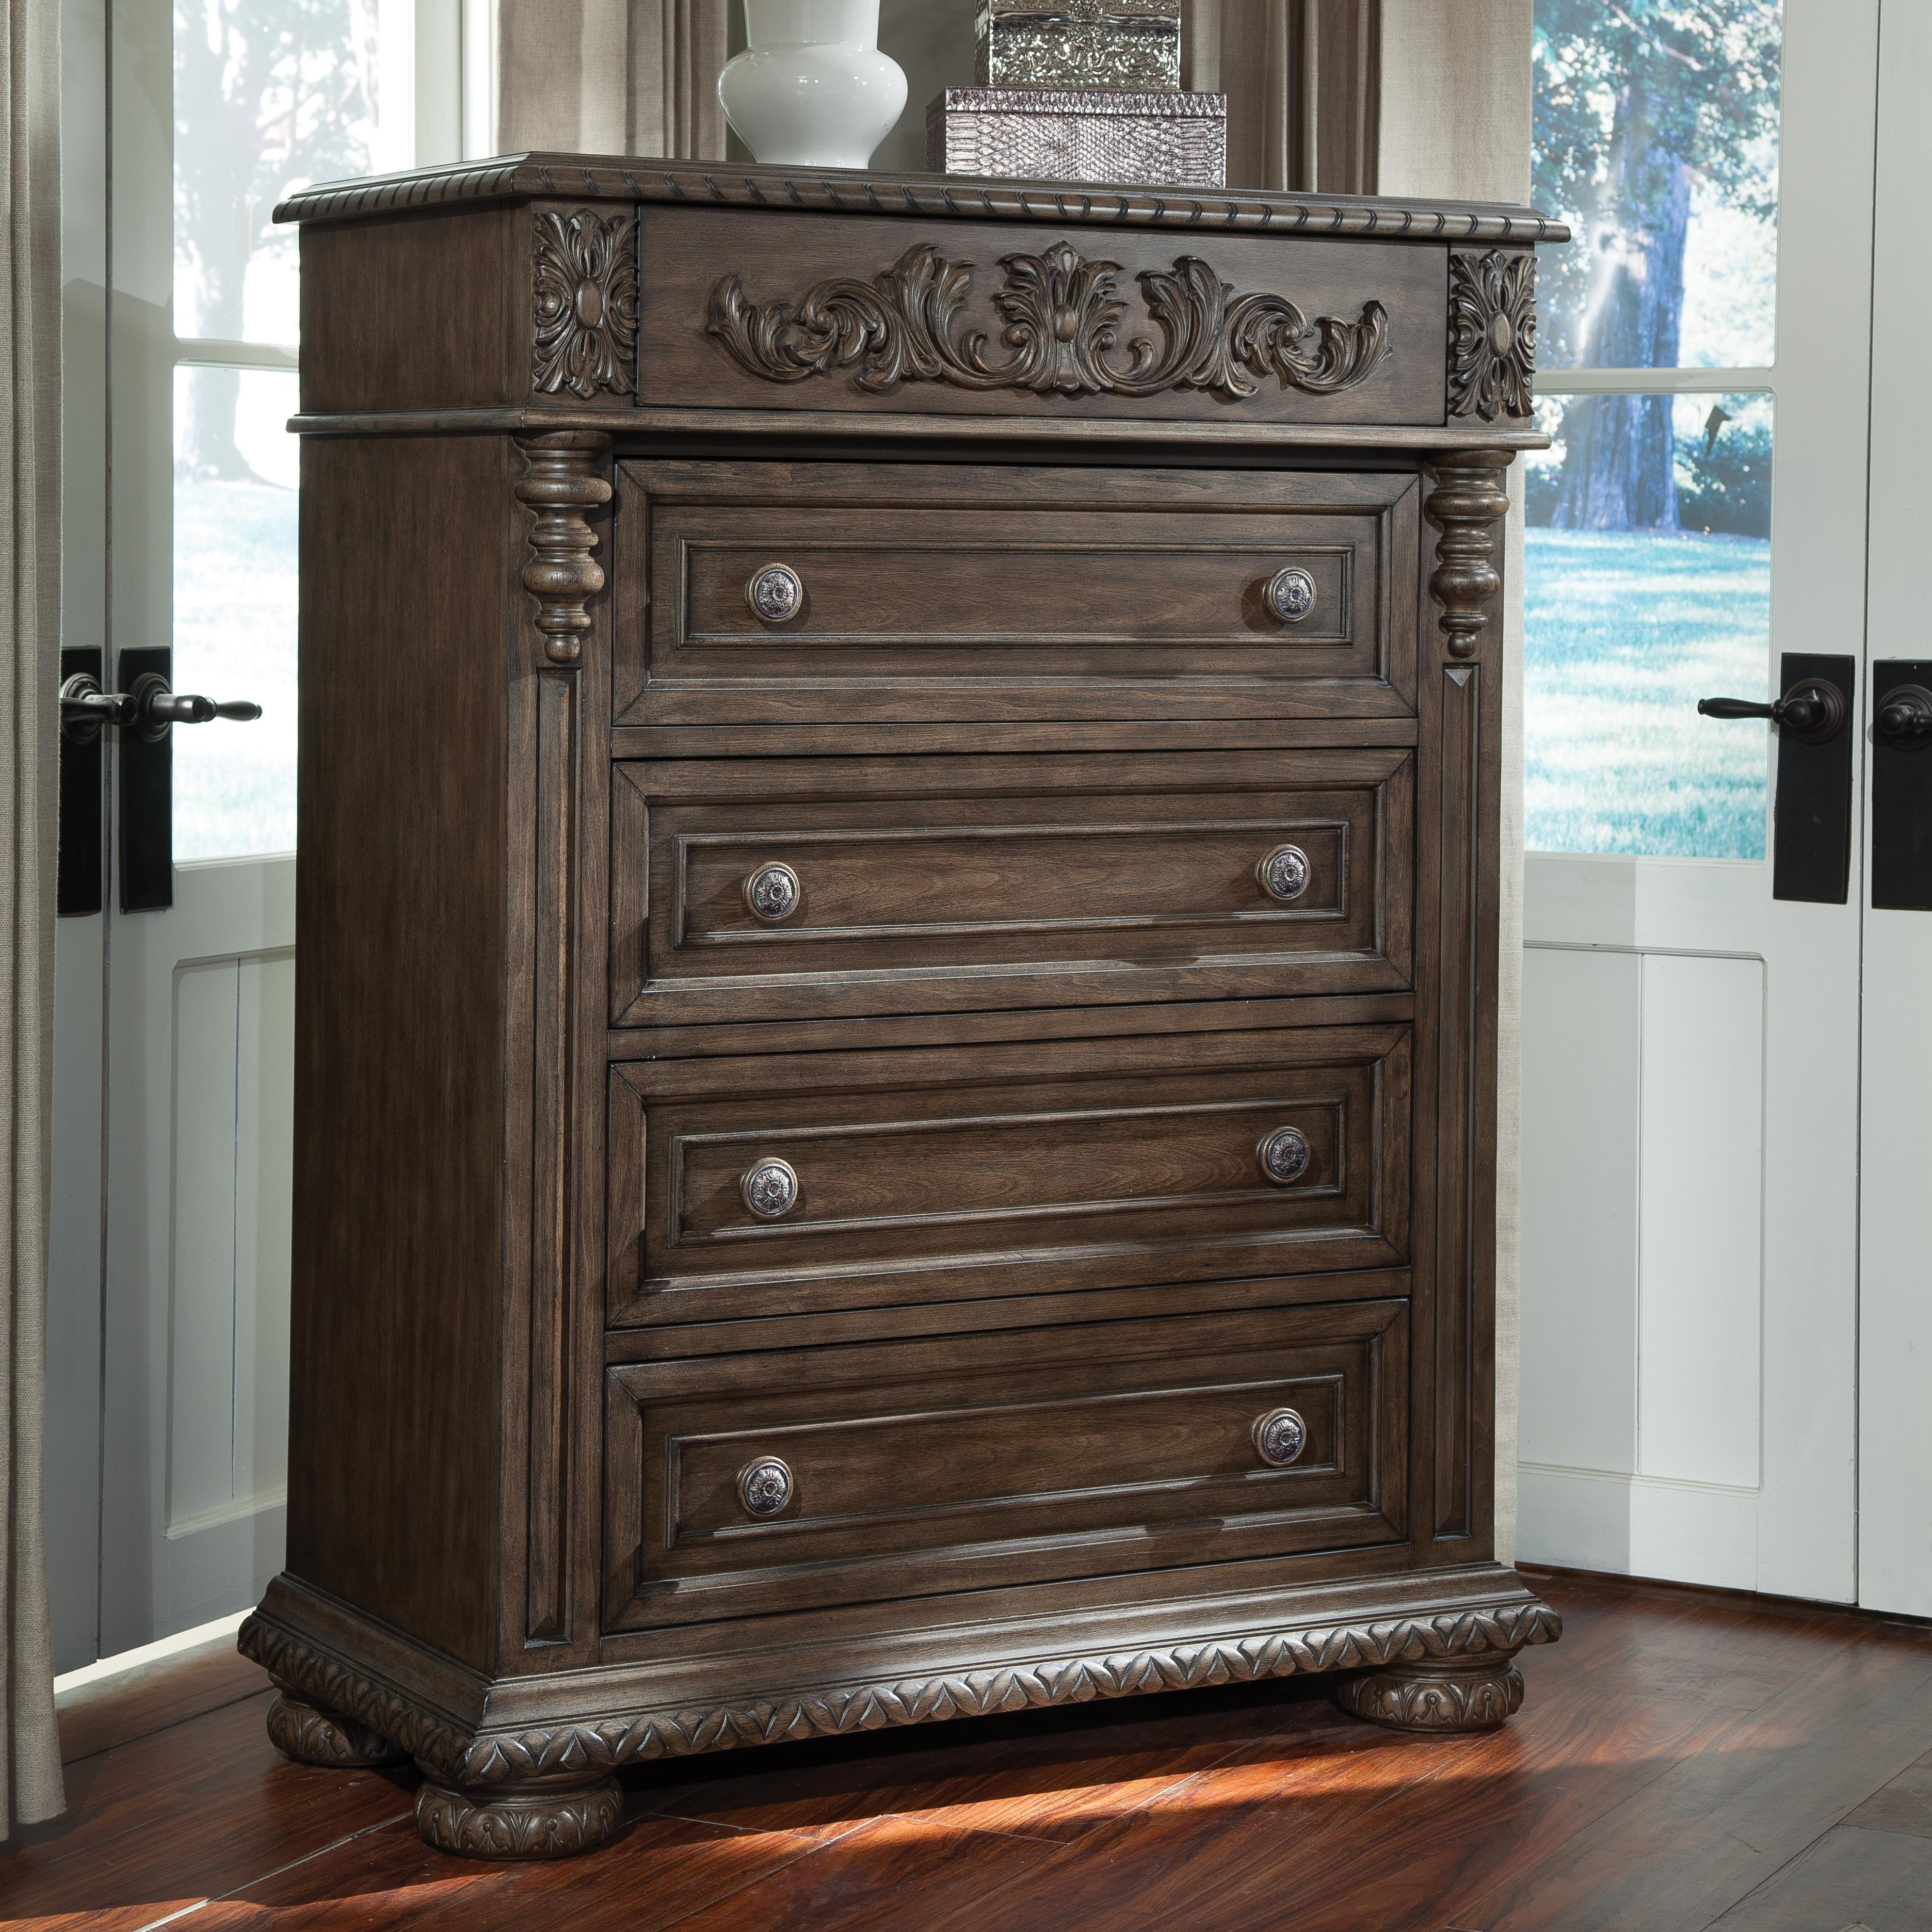 Belfort Basics Virginia Manor Drawer Chest - Item Number: 980-681 CHEST